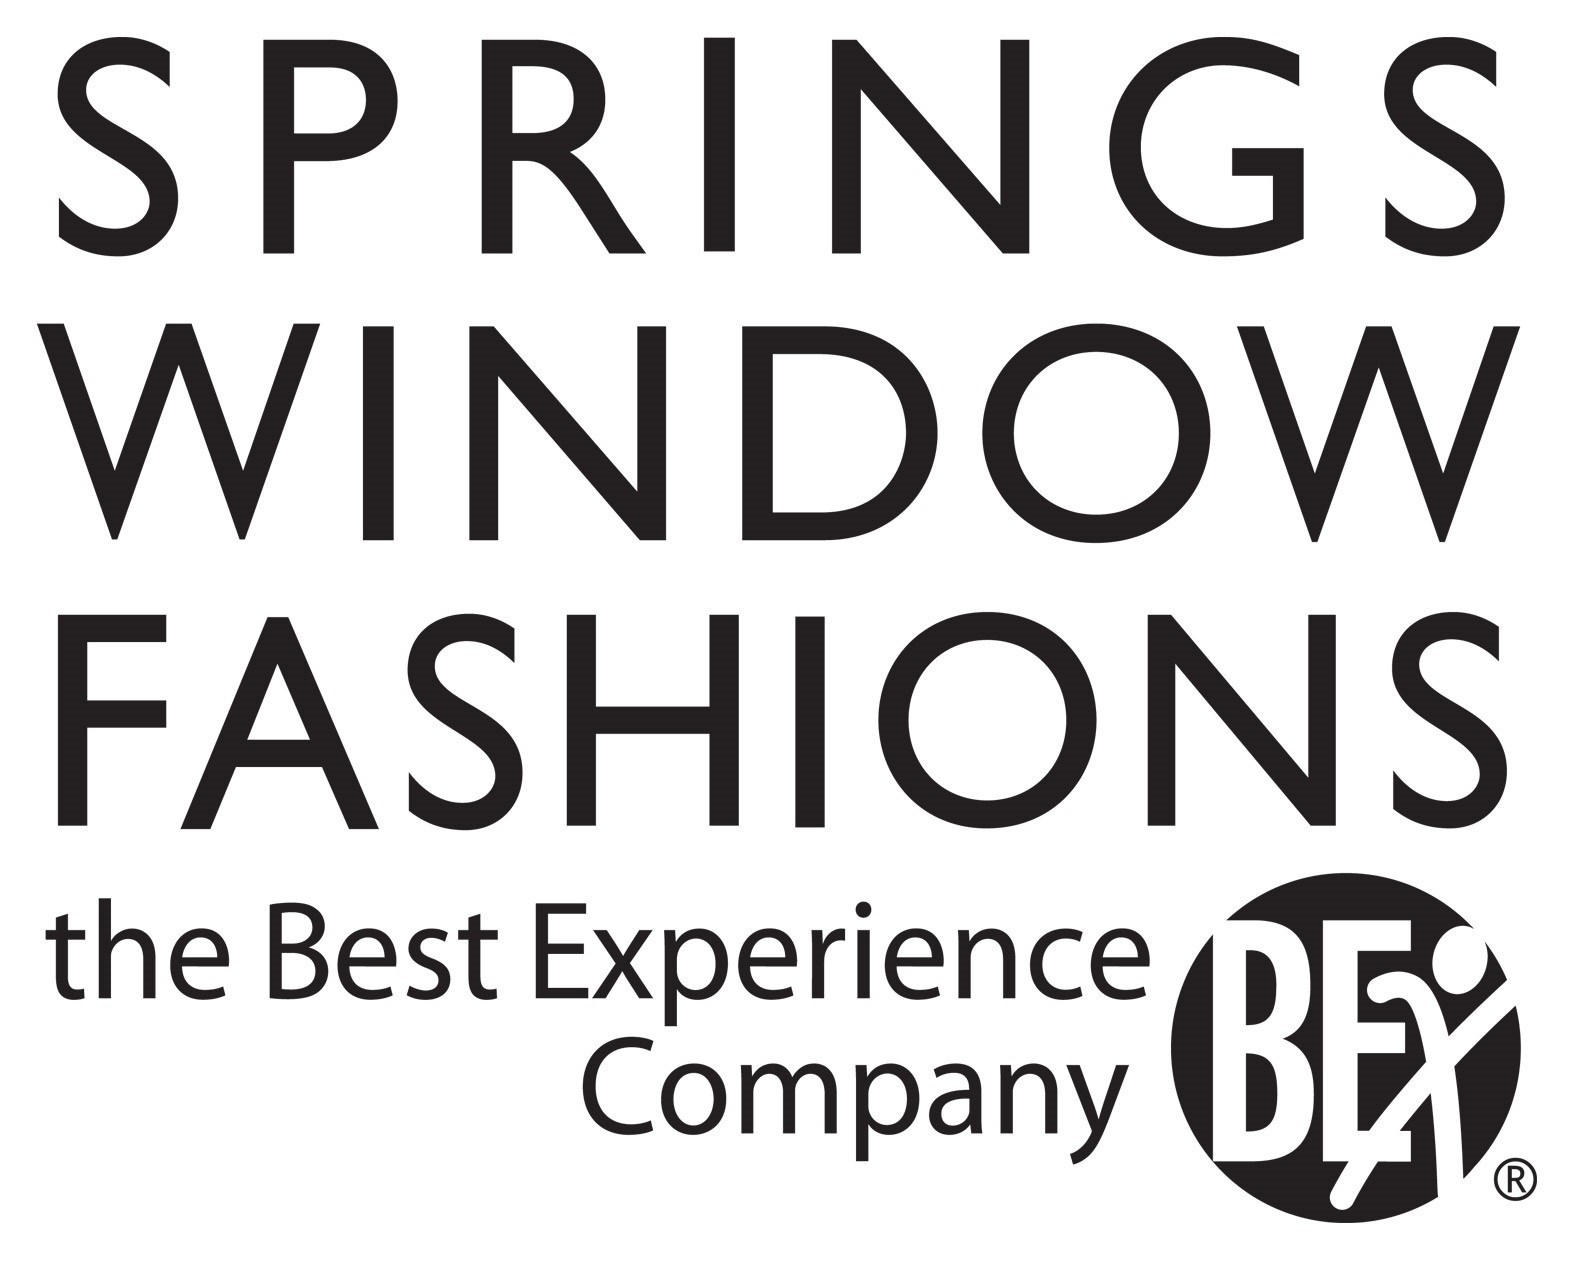 Springs Window Fashions Makes Strategic Investment In Weaveup